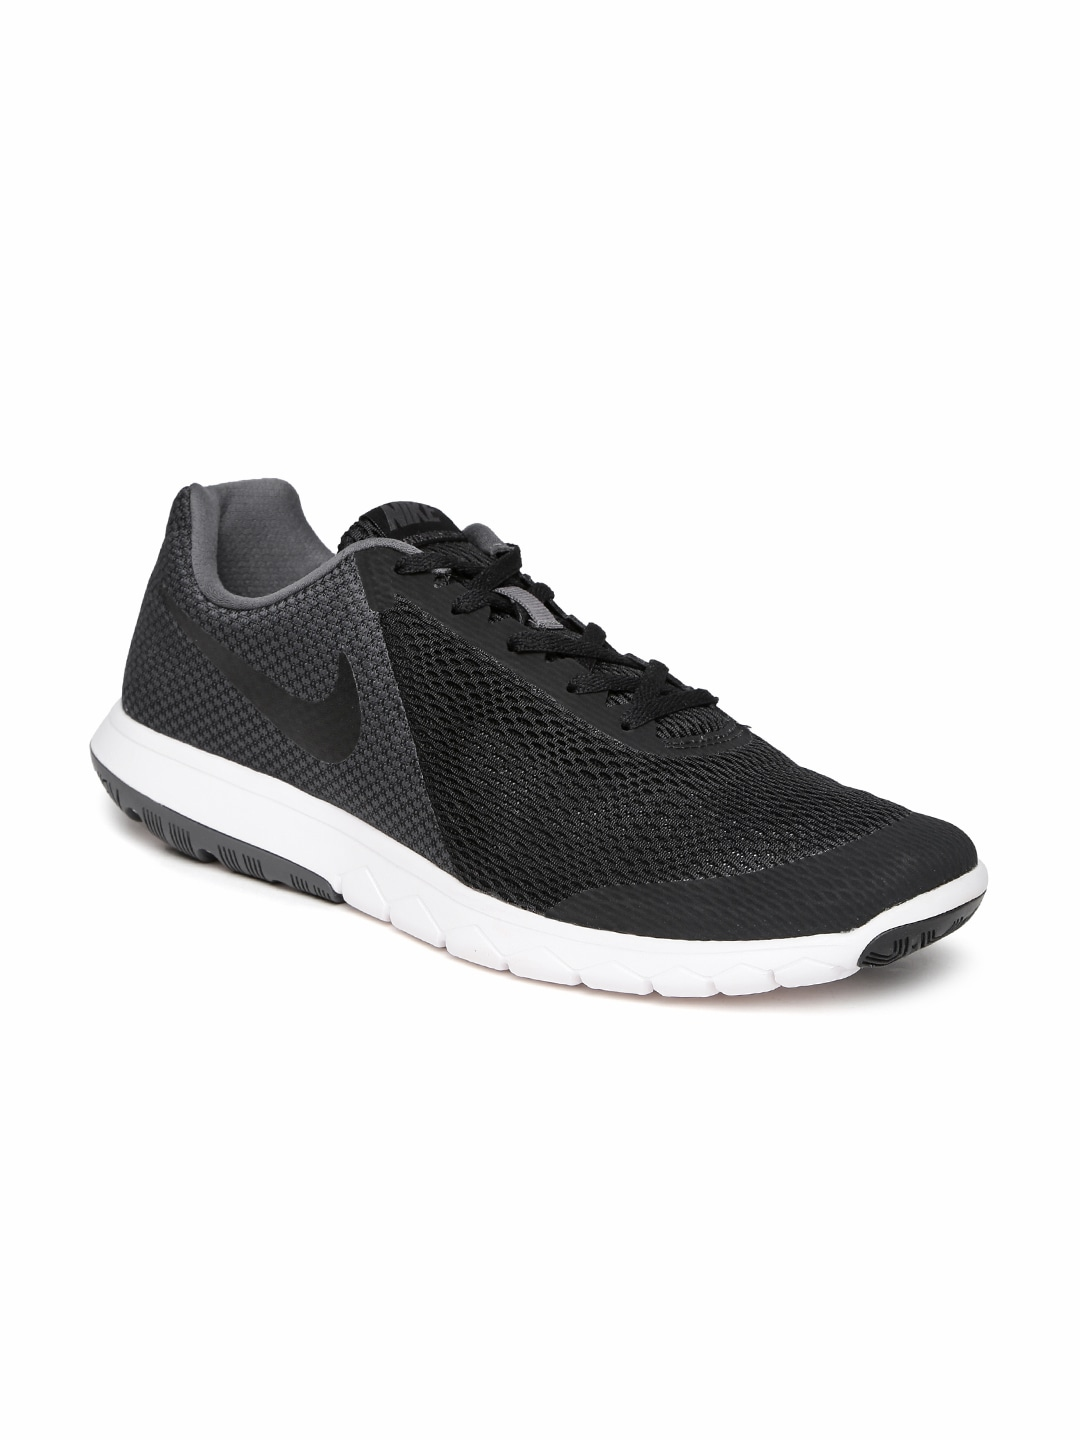 Sports Shoes for Men - Buy Men Sports Shoes Online in India - Myntra